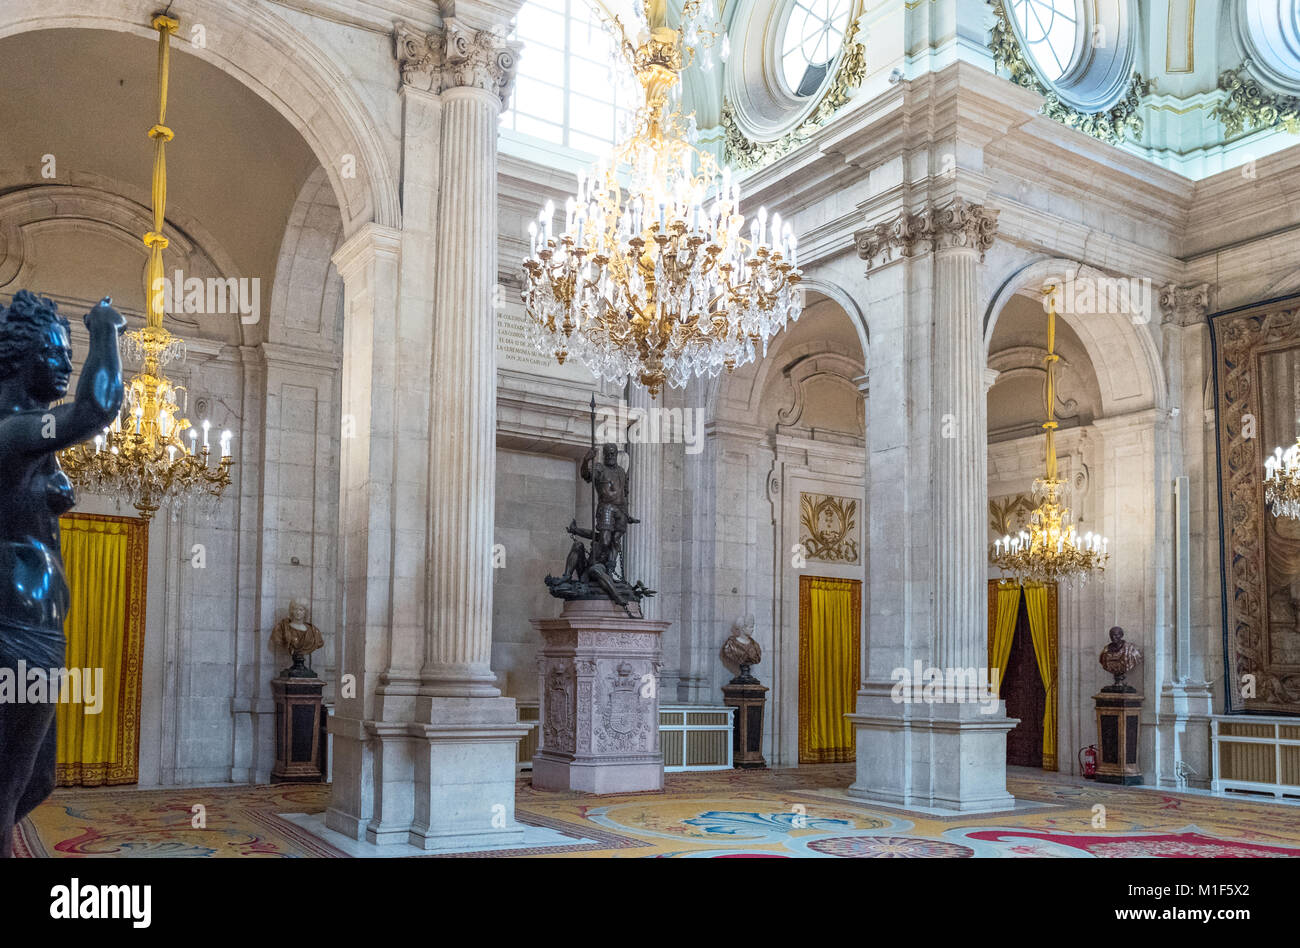 Madrid, Spain, The Halberdiers' Room of the Royal Palace - Stock Image